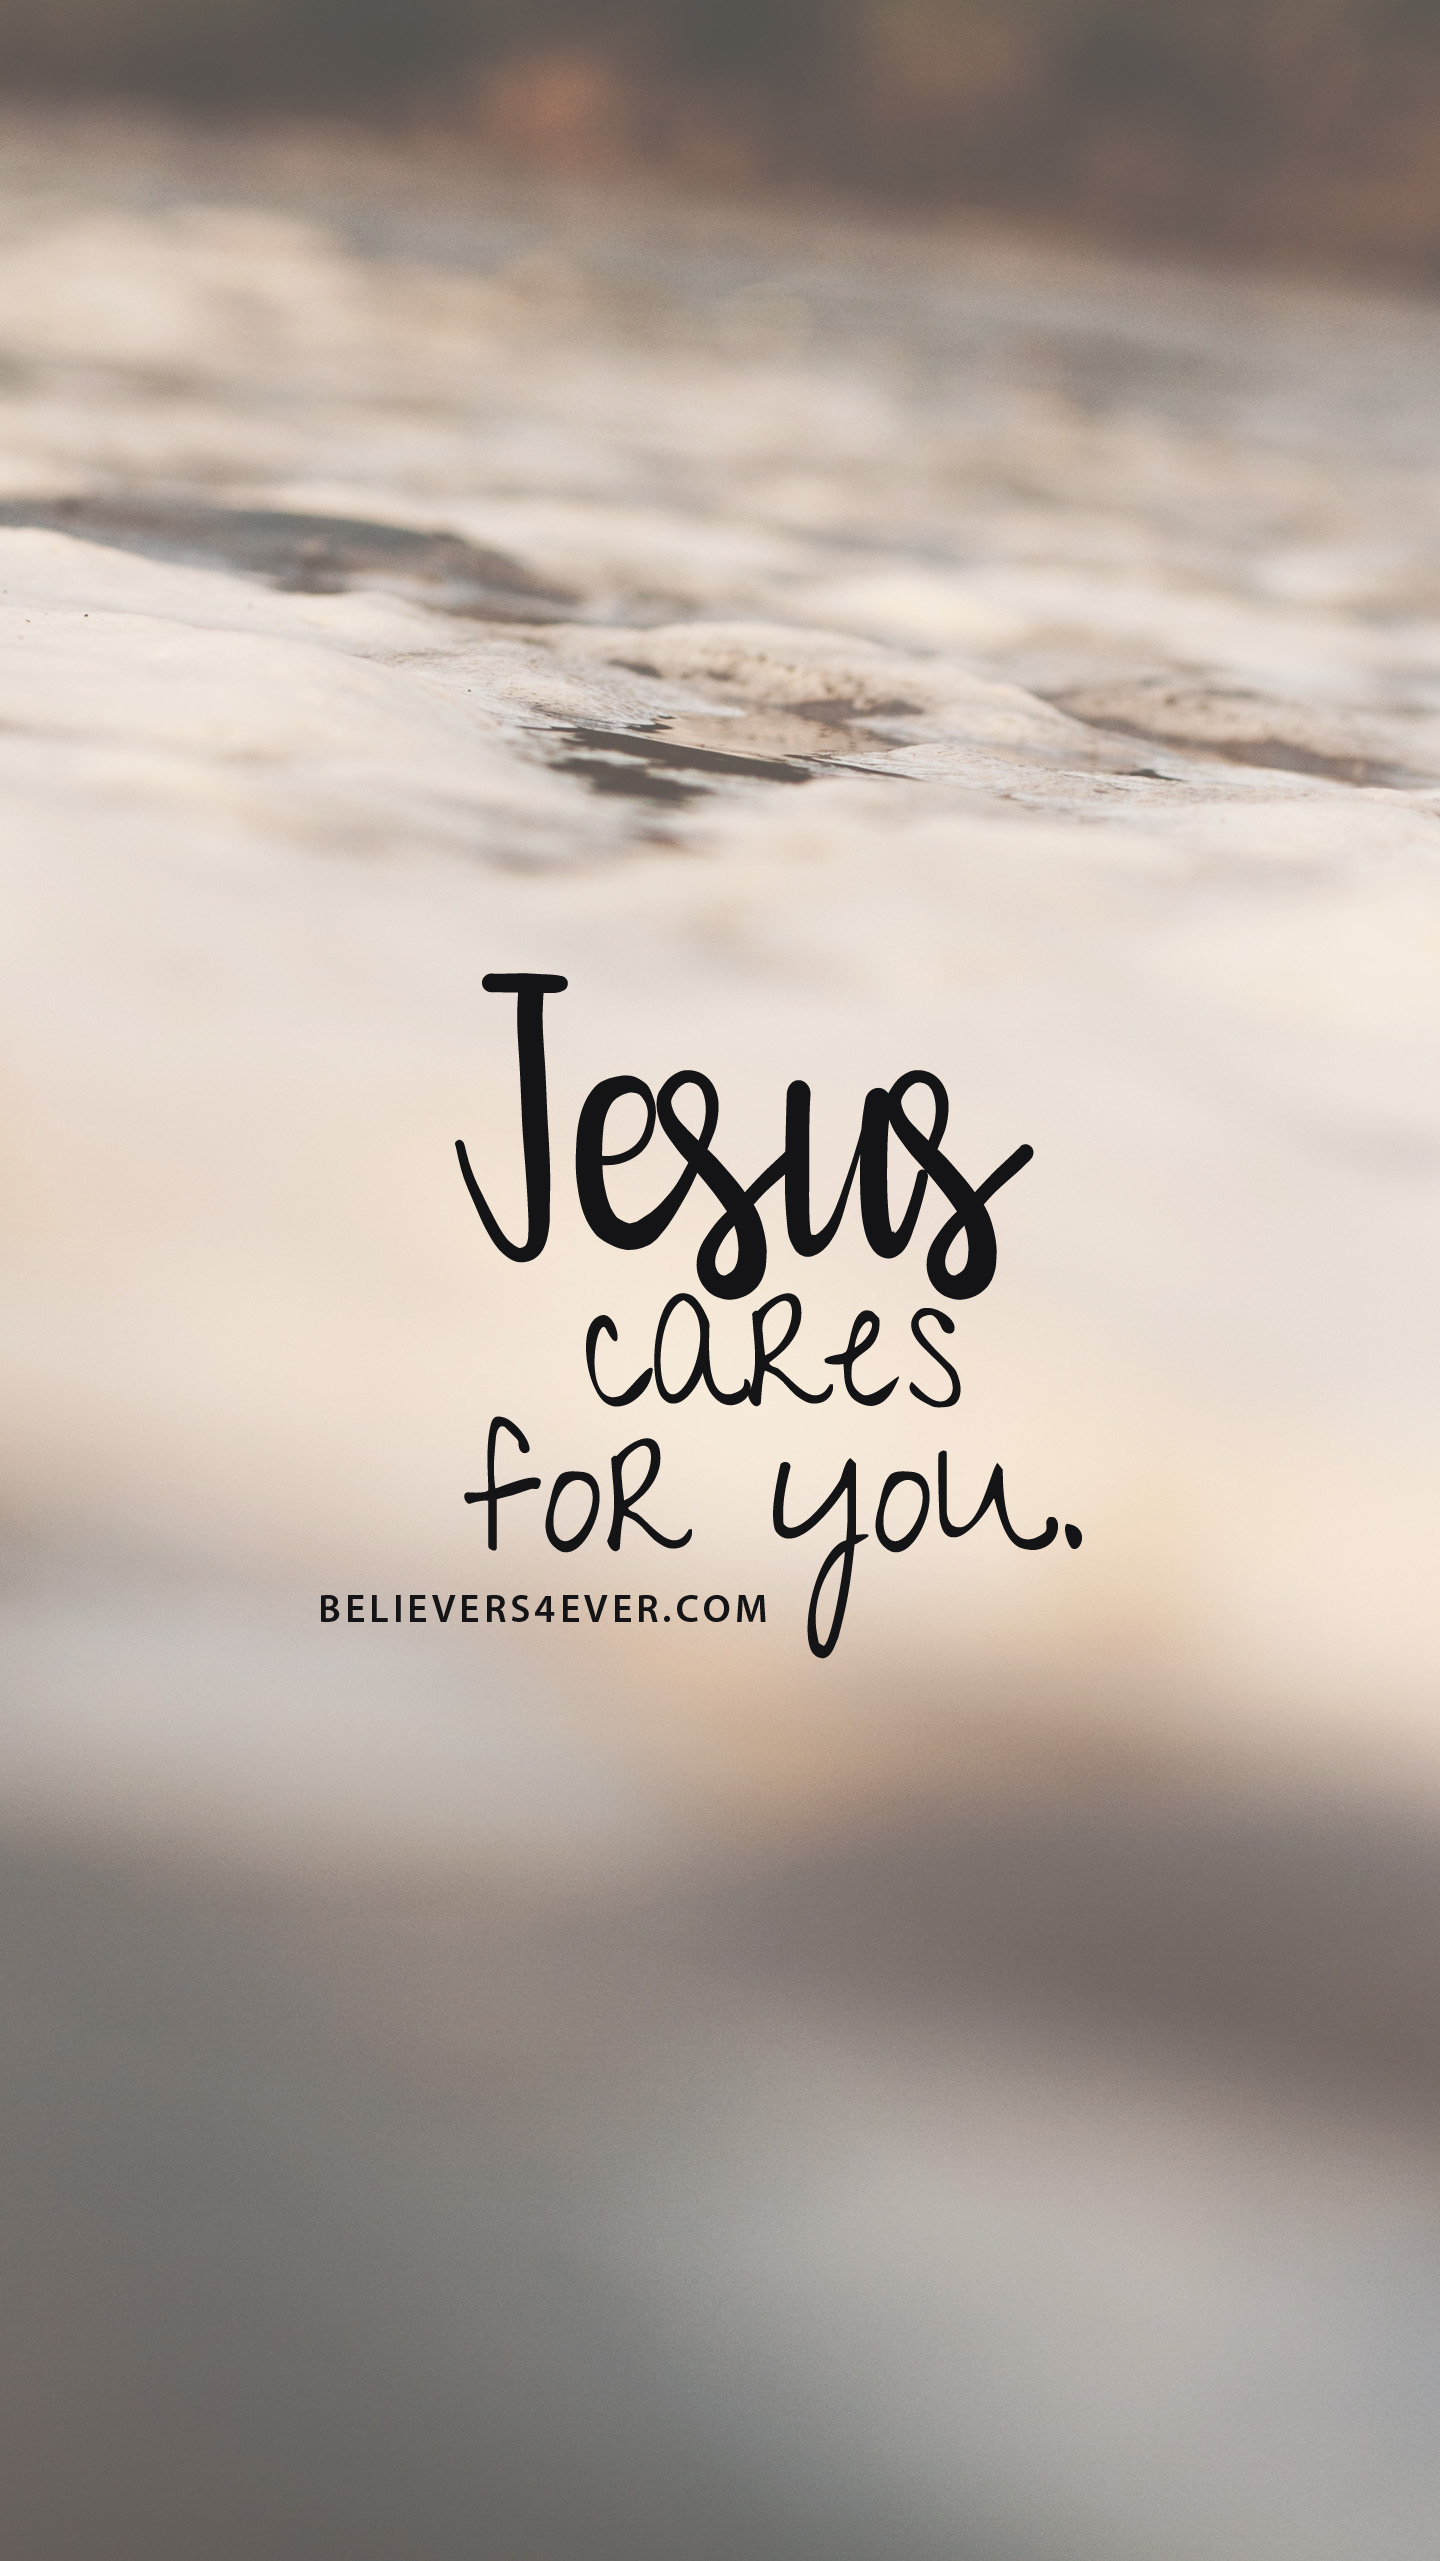 Jesus cares for you